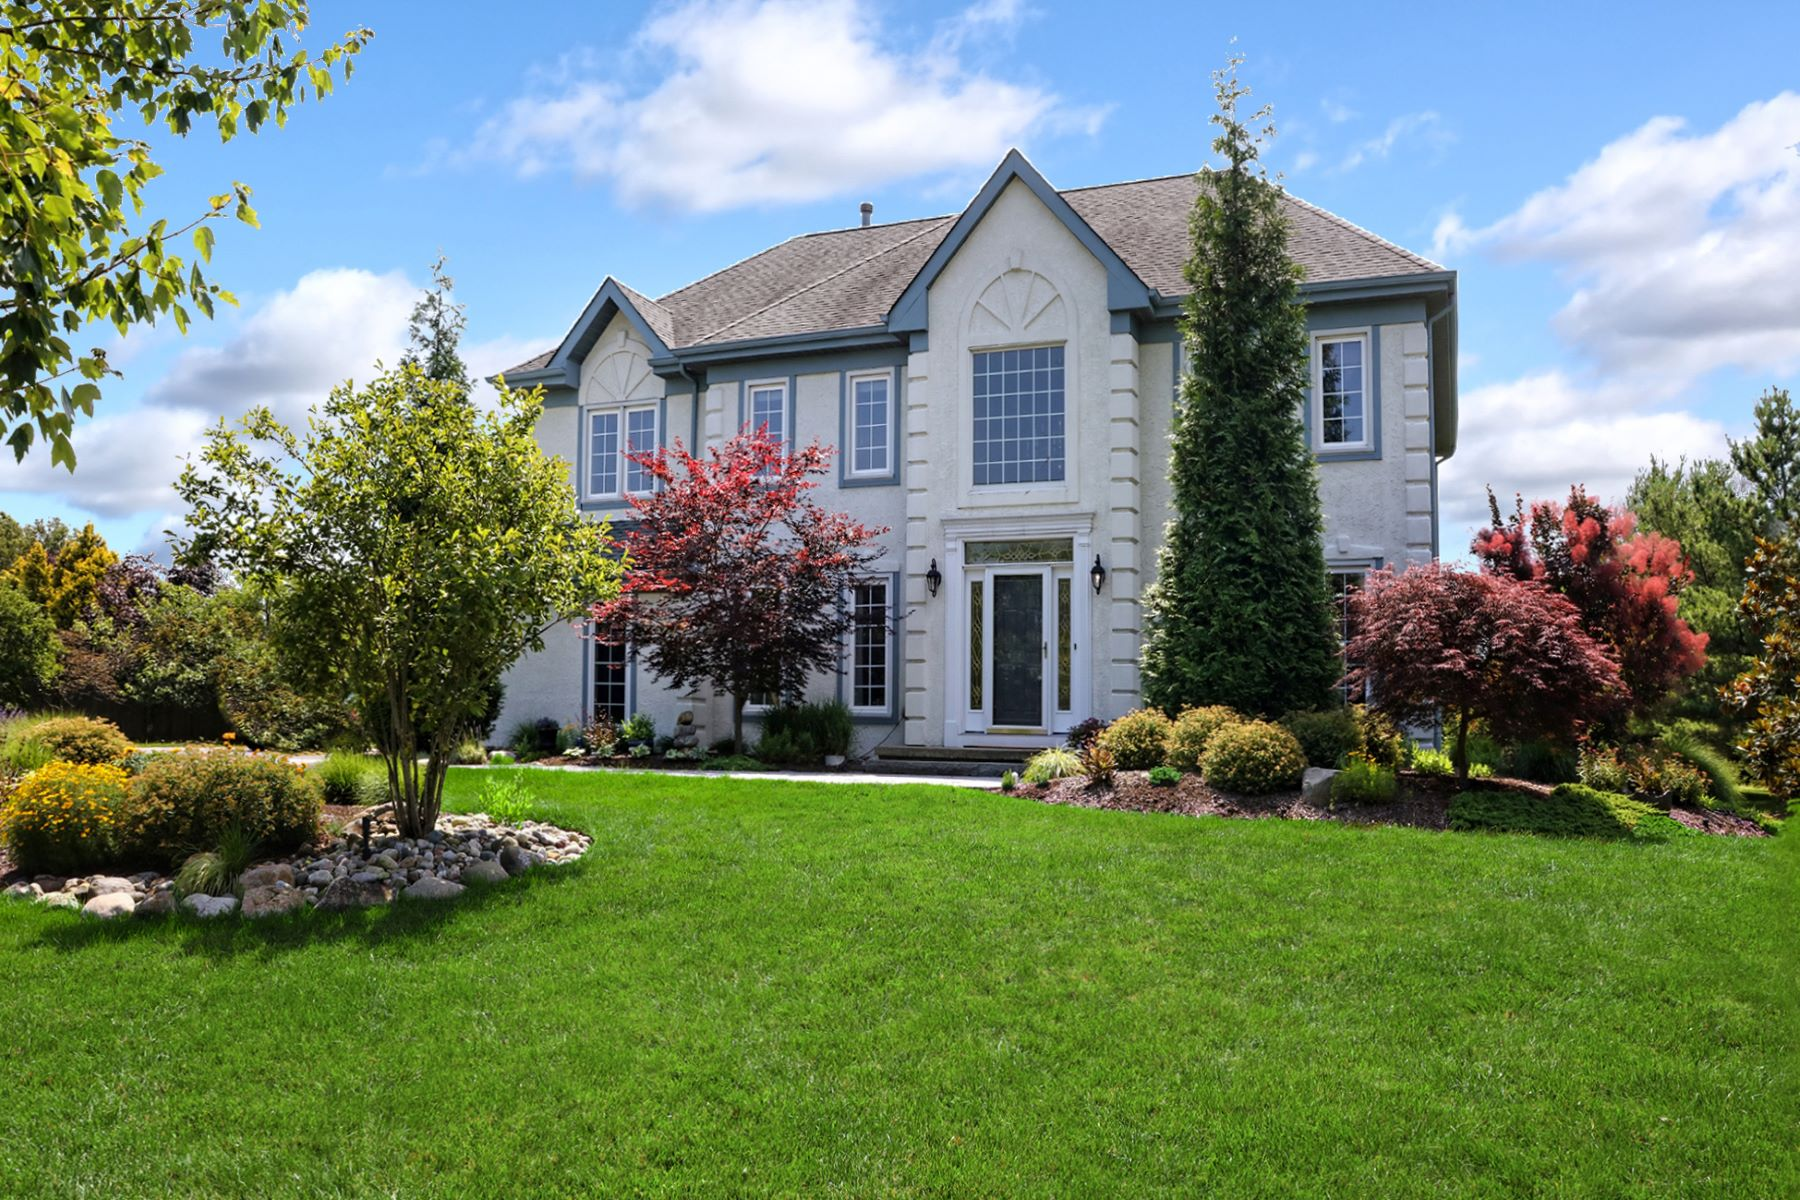 Single Family Homes for Sale at Perfectly Scaled and Detailed in Kings Point 73 Saratoga Drive, West Windsor, New Jersey 08550 United States